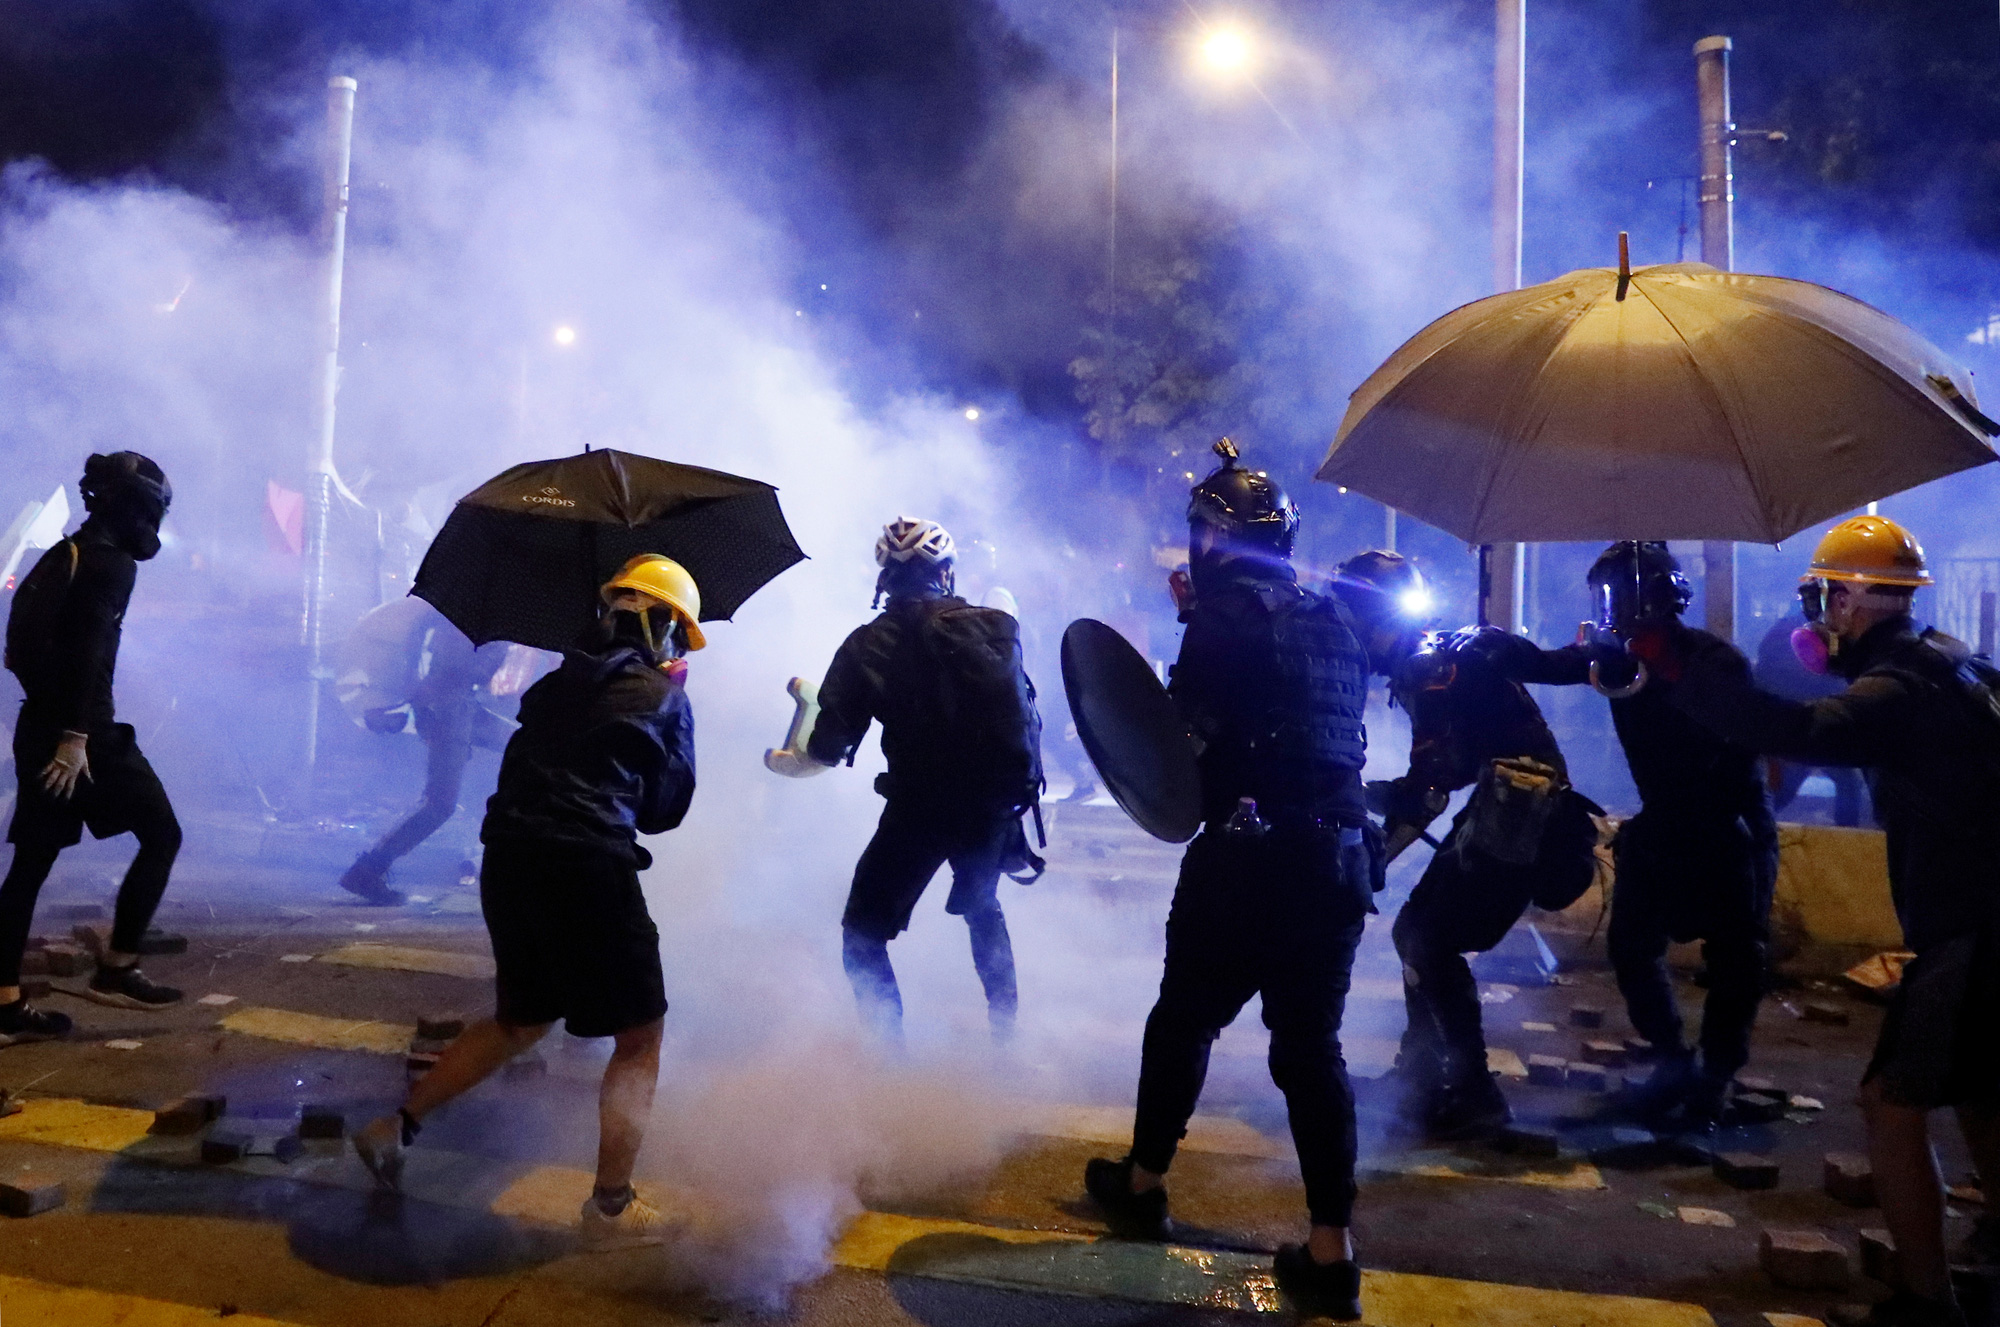 Chaos in front of the Chinese University of Hong Kong on November 16, 2019. Photo: Reuters